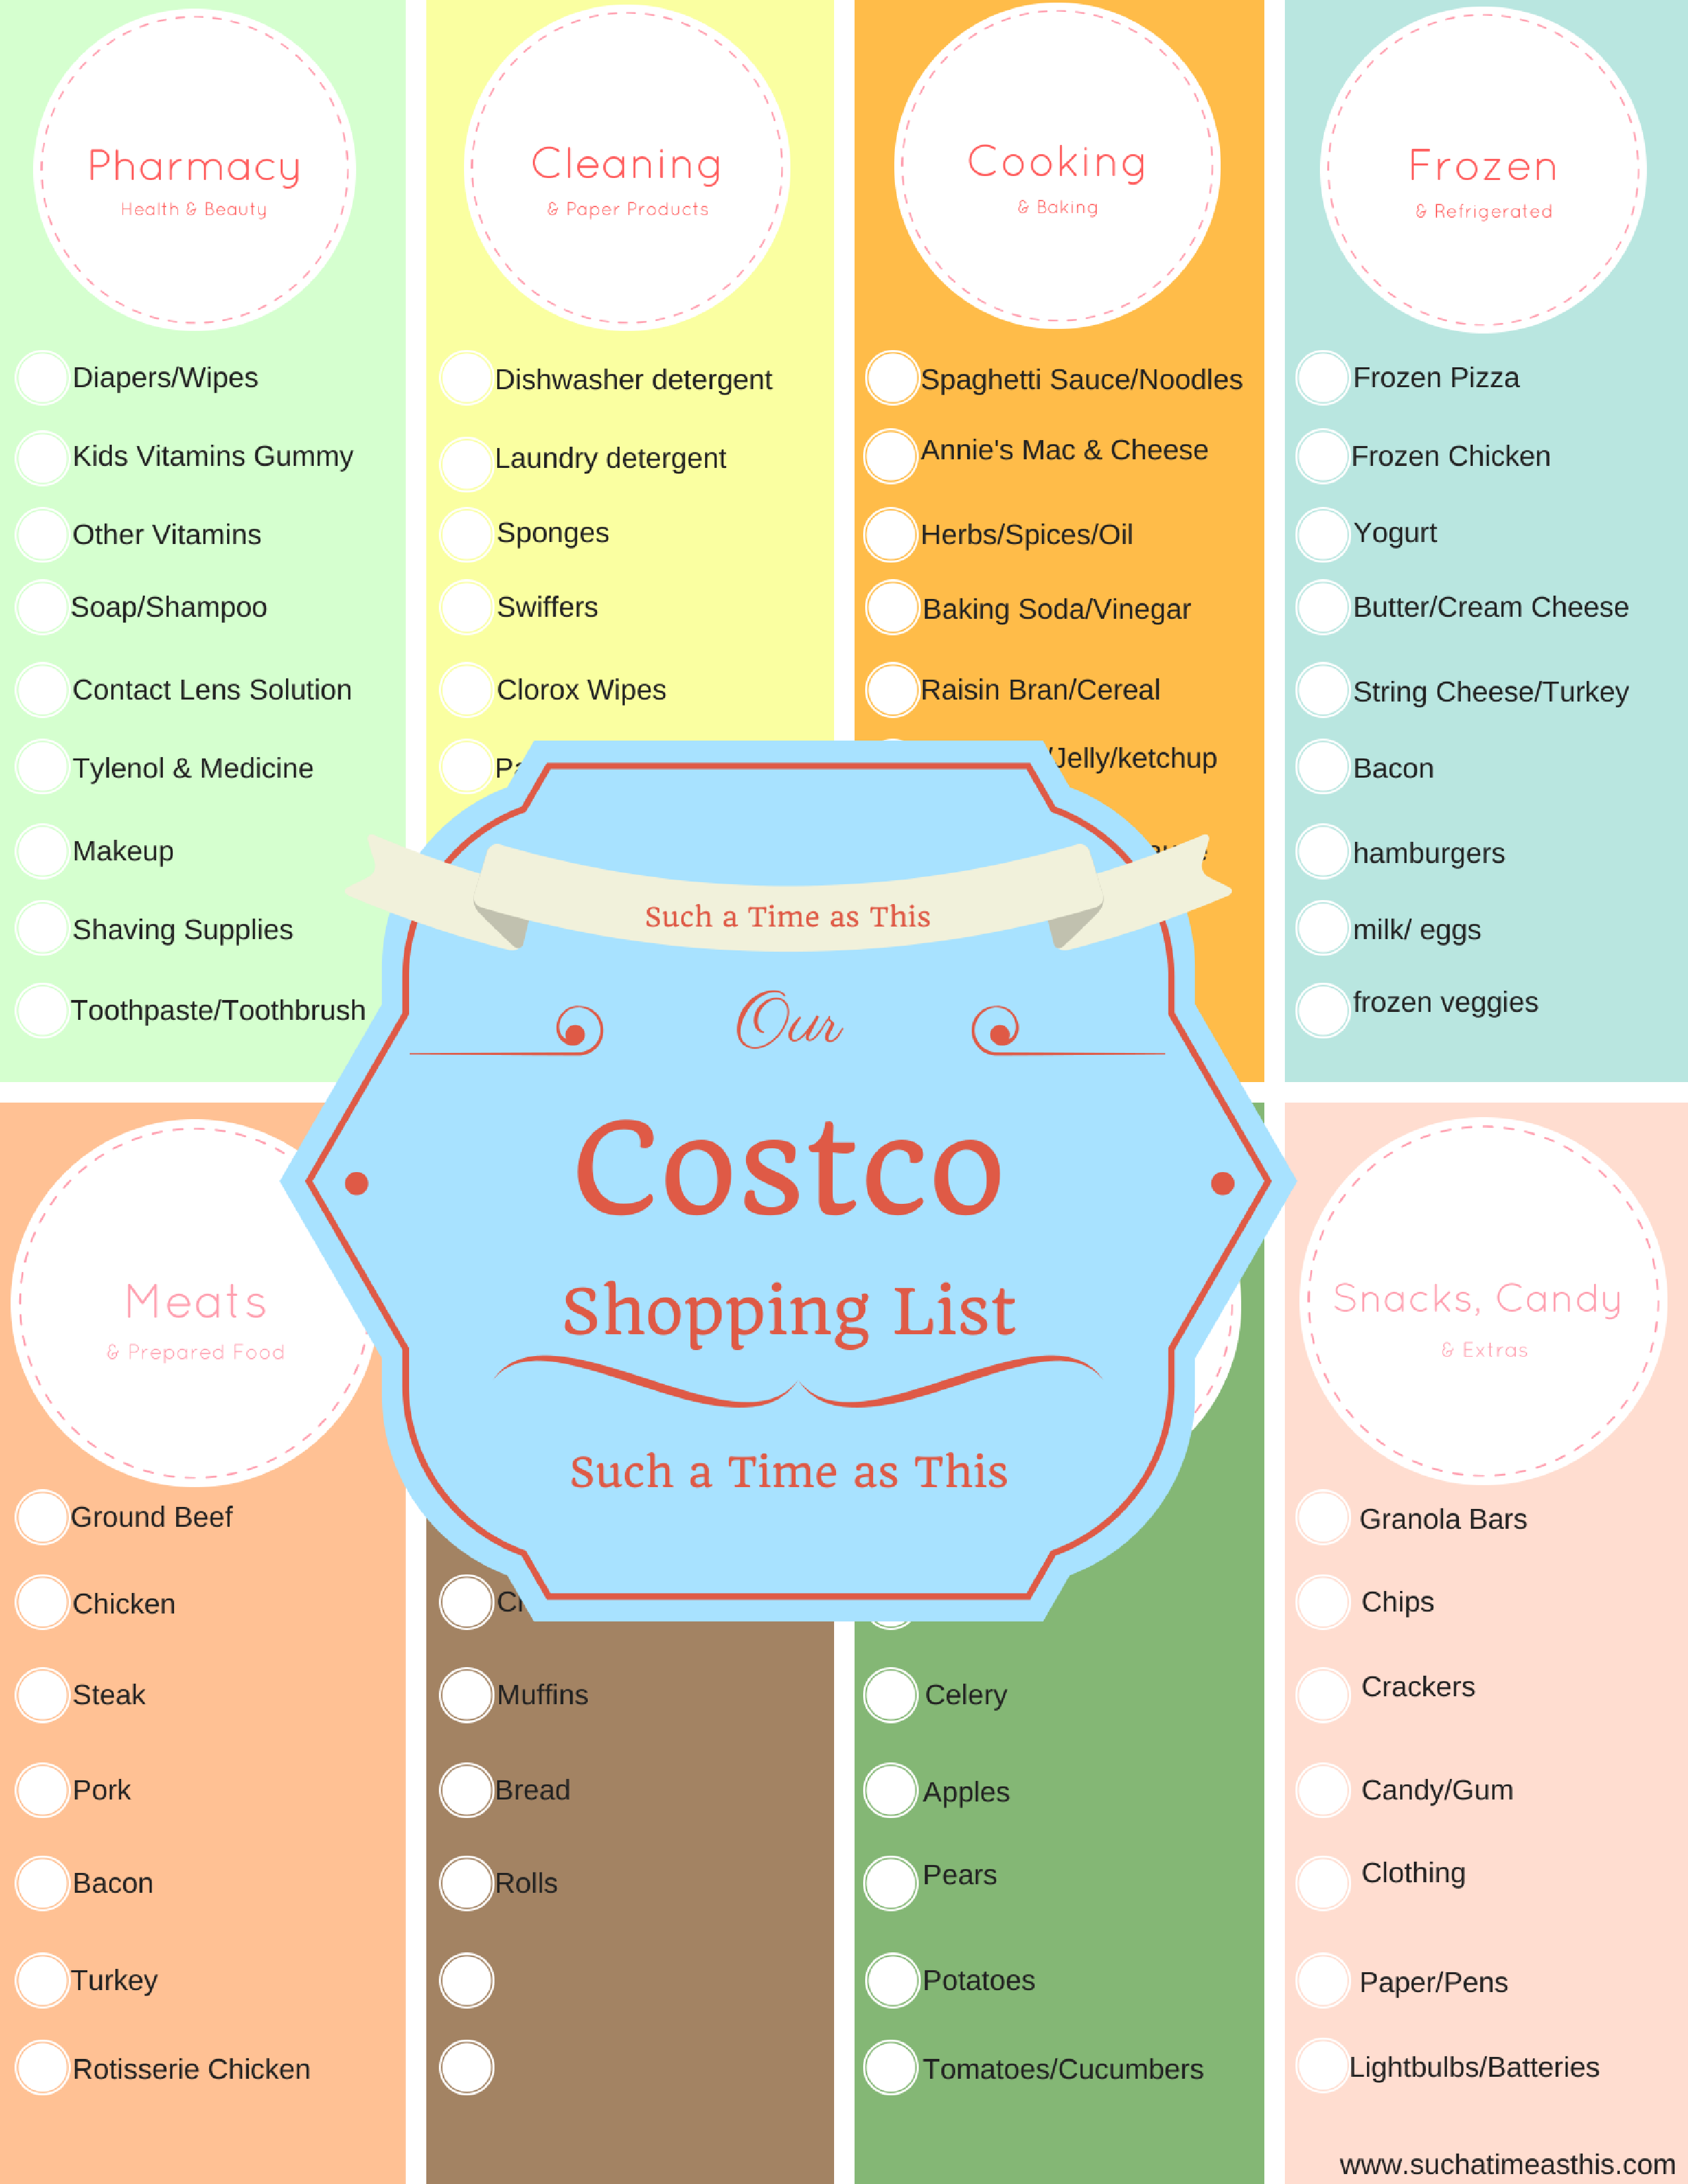 10 Things You Need To Know About Costco Free Printable Costco Shopping List Costco Shopping List Costco Shopping Vitamins For Kids